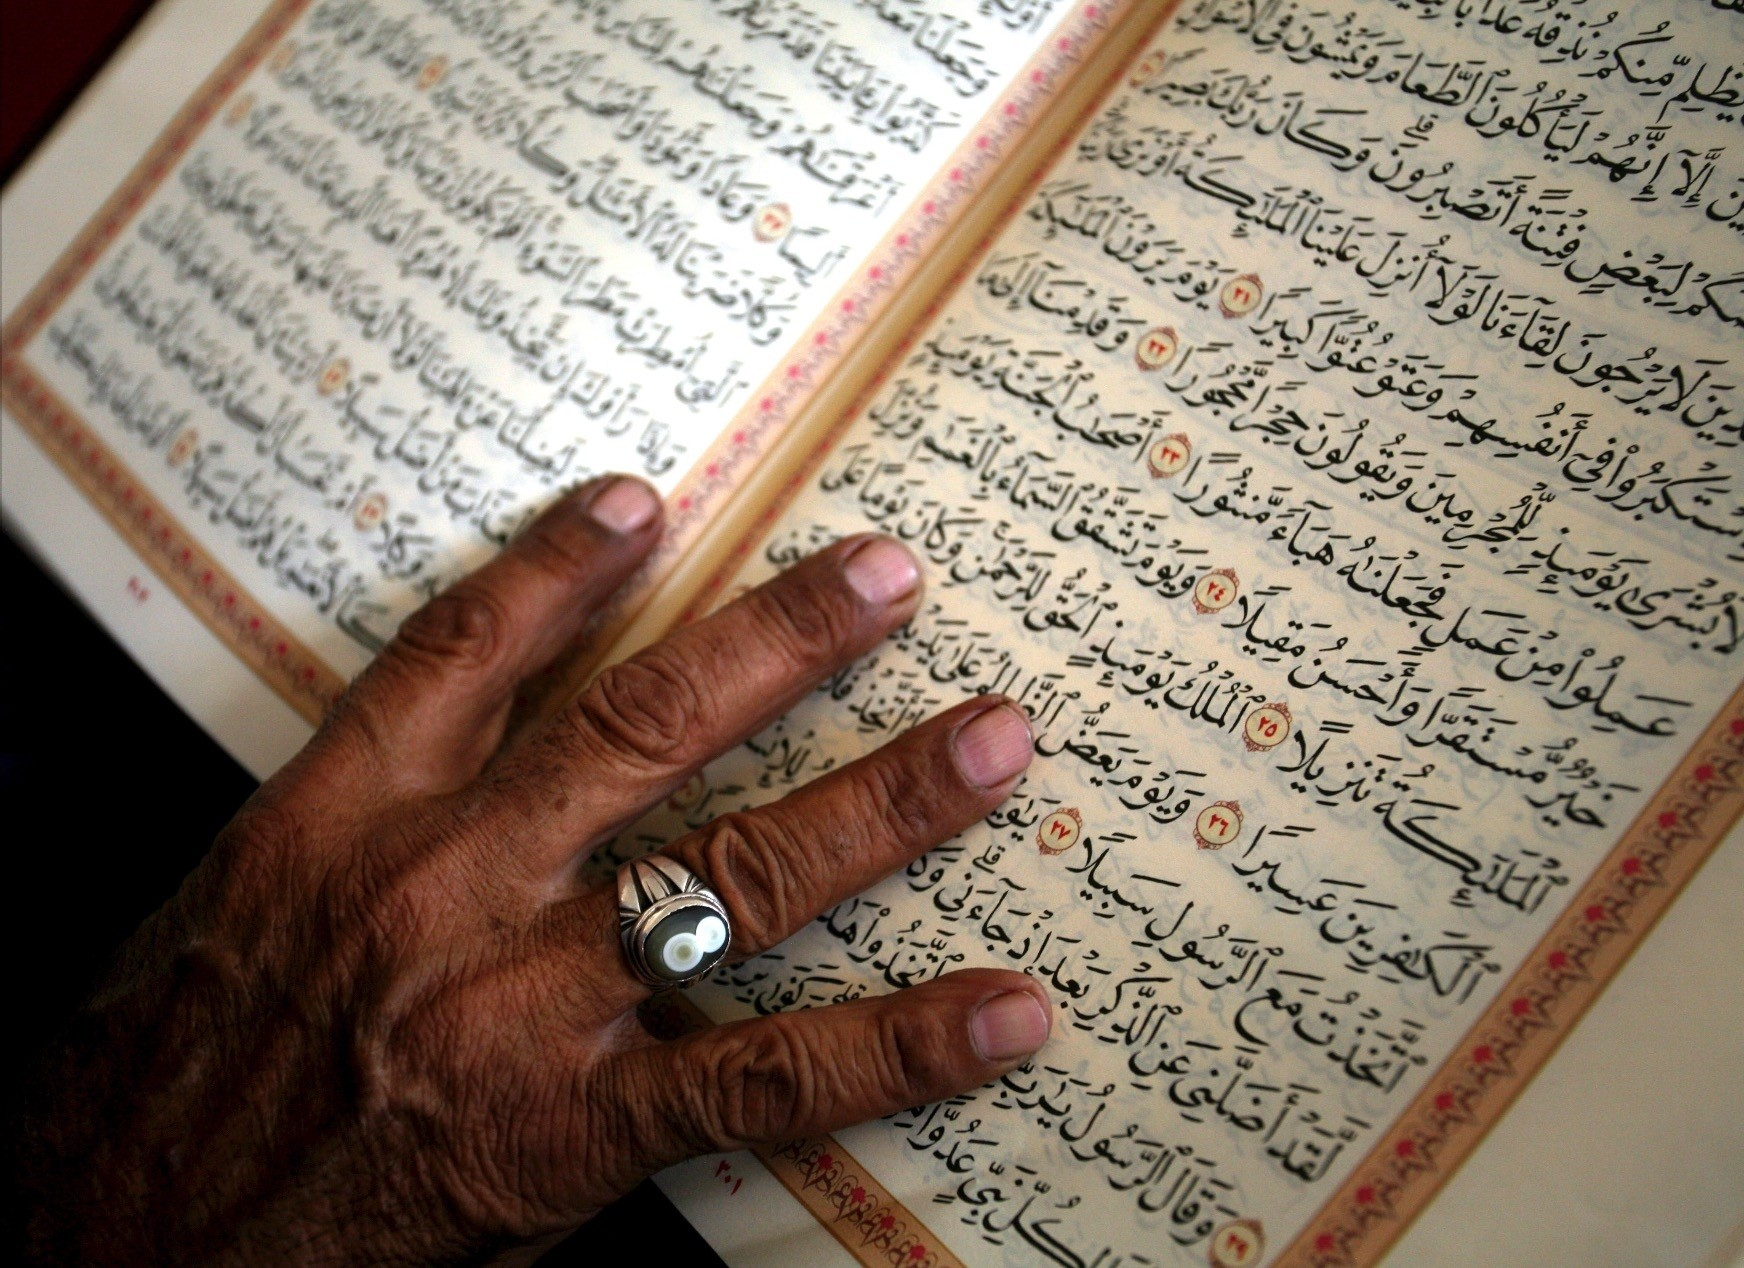 An elderly man touches pages of the Quran as he reads it after noon prayers on the second day of the Muslim holy month of Ramadan in Amman.